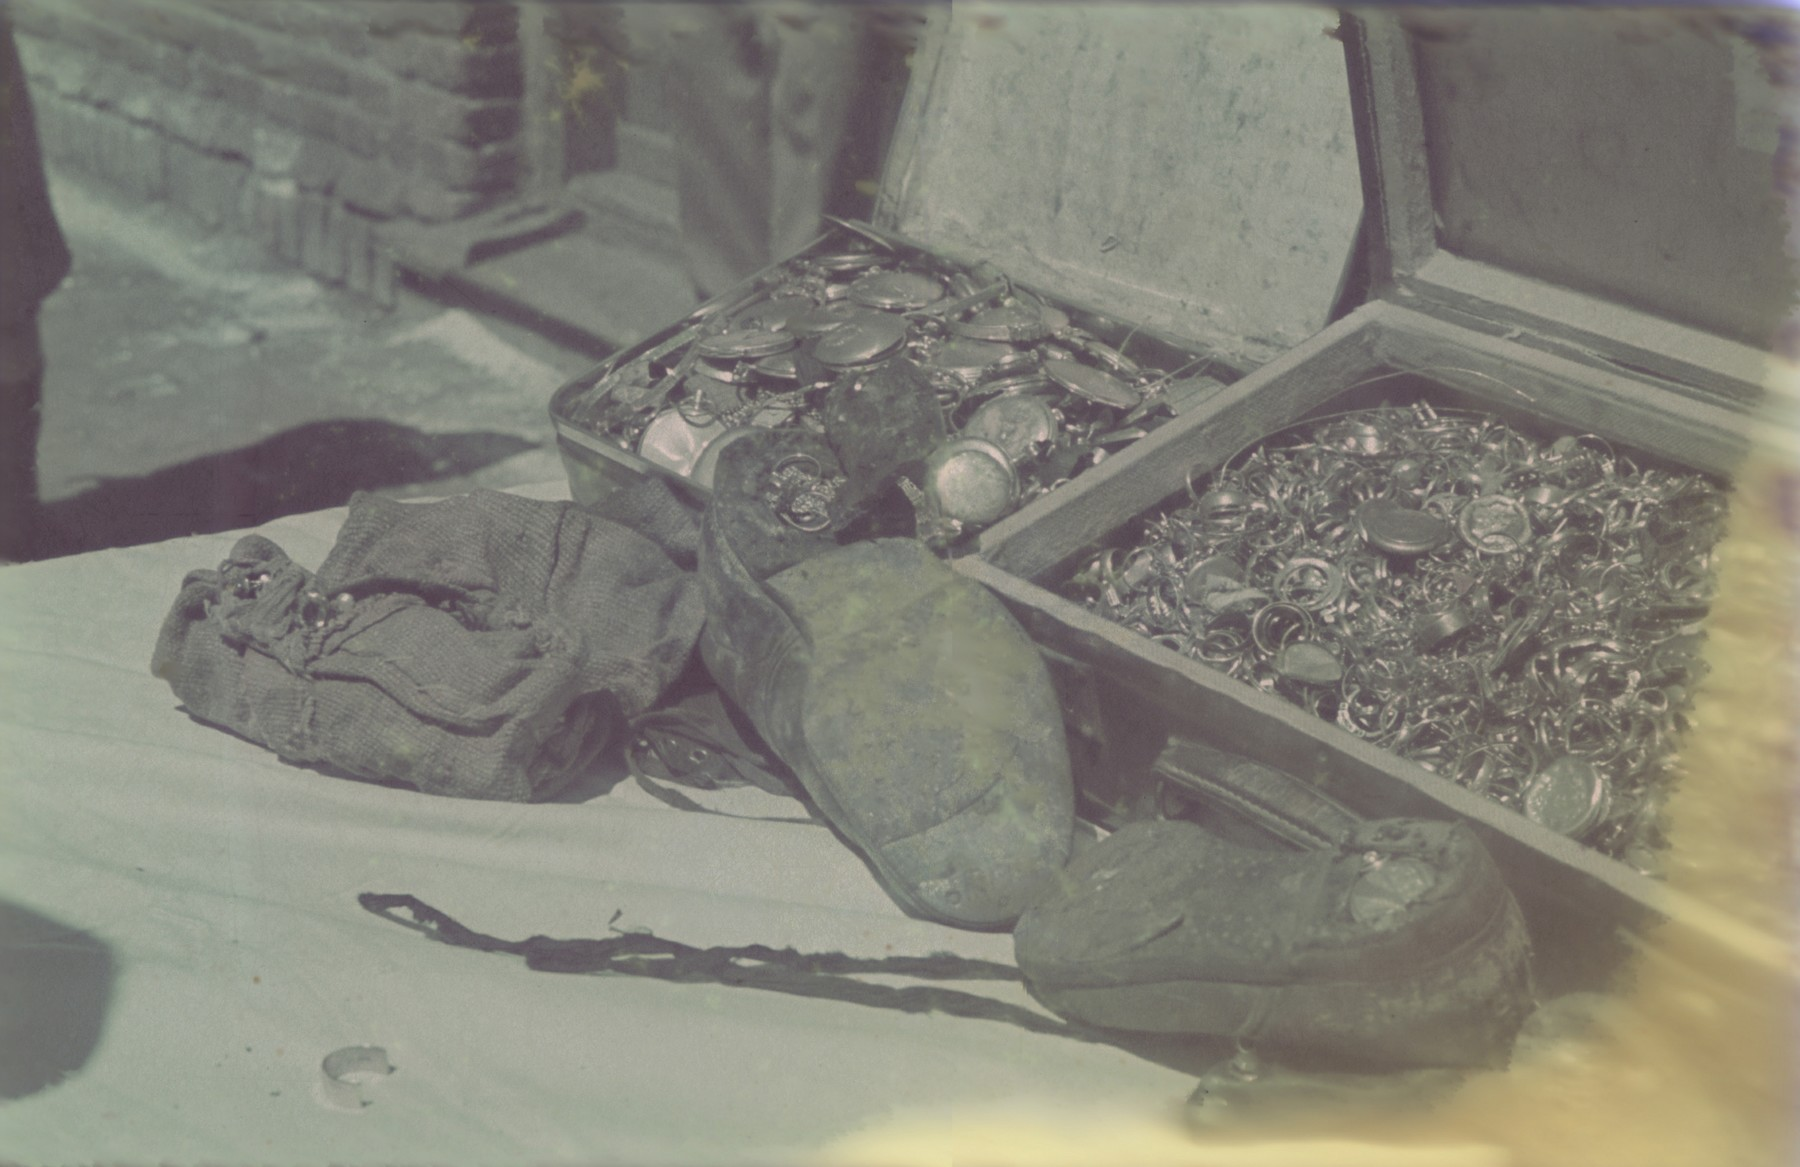 """A display of confiscated valuables, some buried in the heels of shoes, collected and sorted in the Pabianice labor camp/storage facility.  Original caption: Pabianice, """"Versteckte Werte"""" (hidden valuables), #32."""